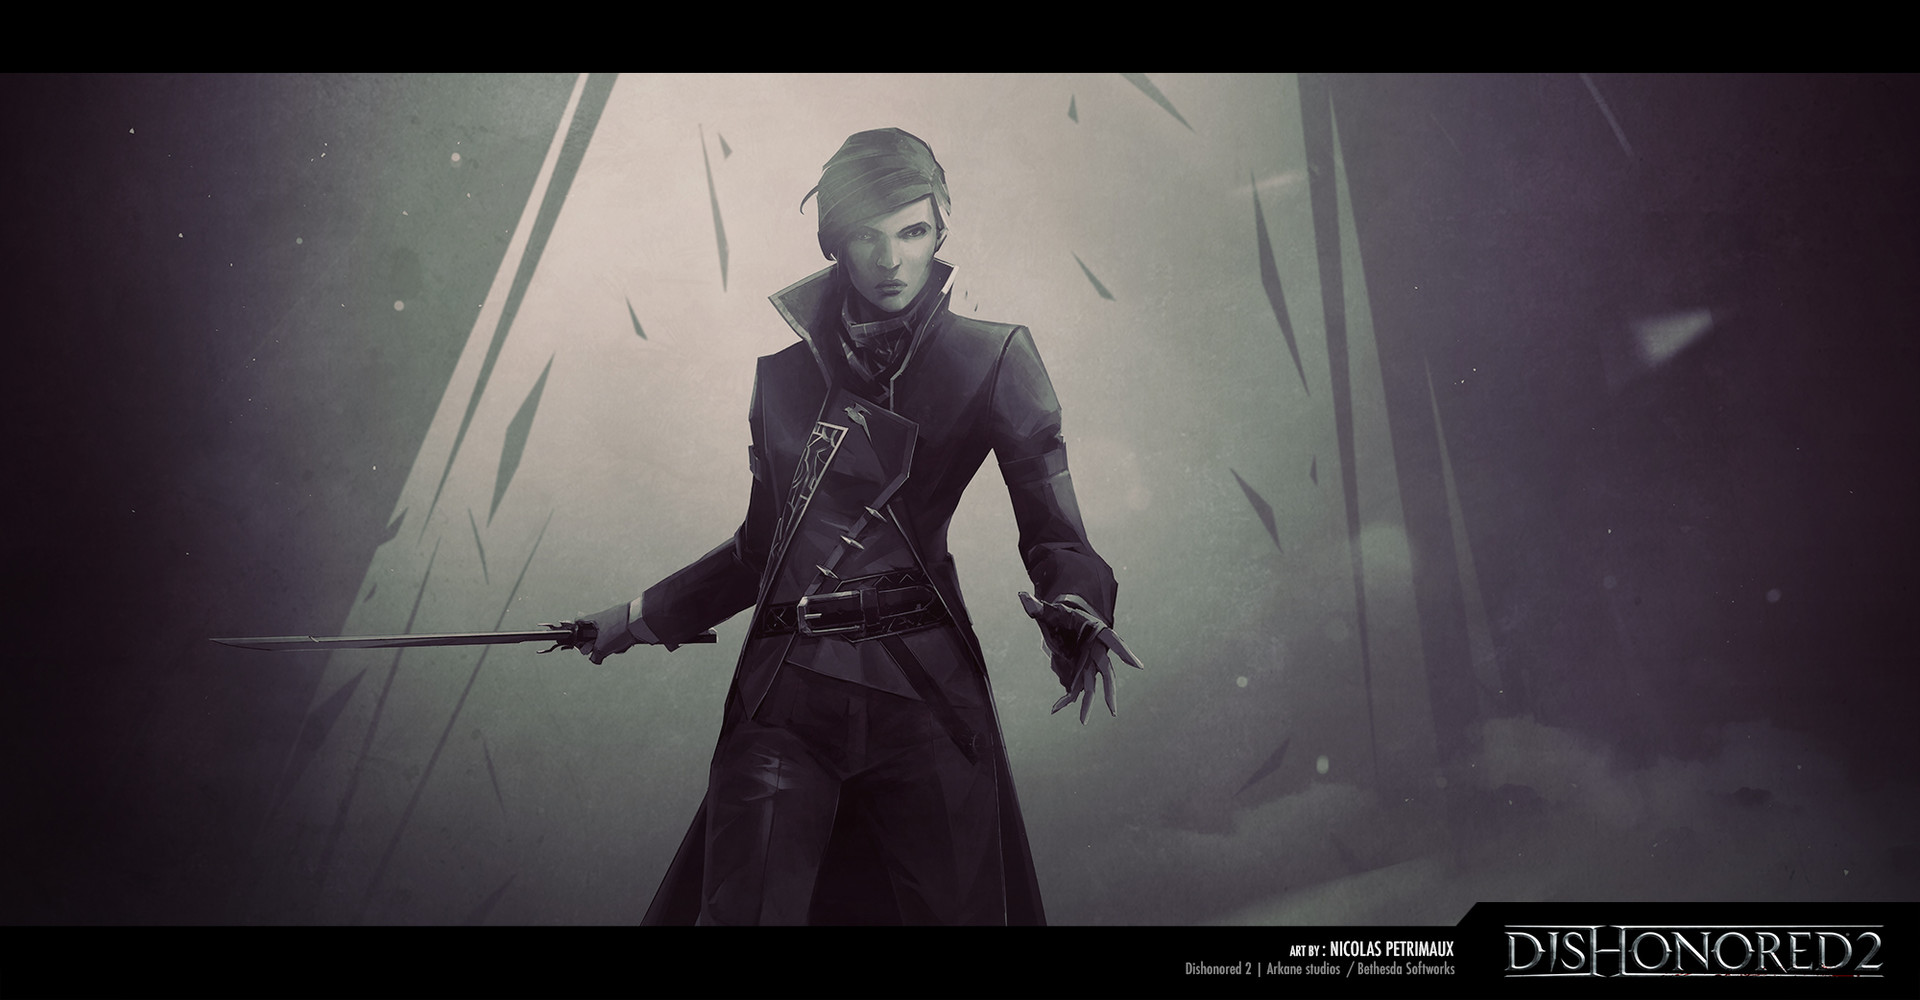 Nicolas petrimaux templatecredit dishonored2 emily